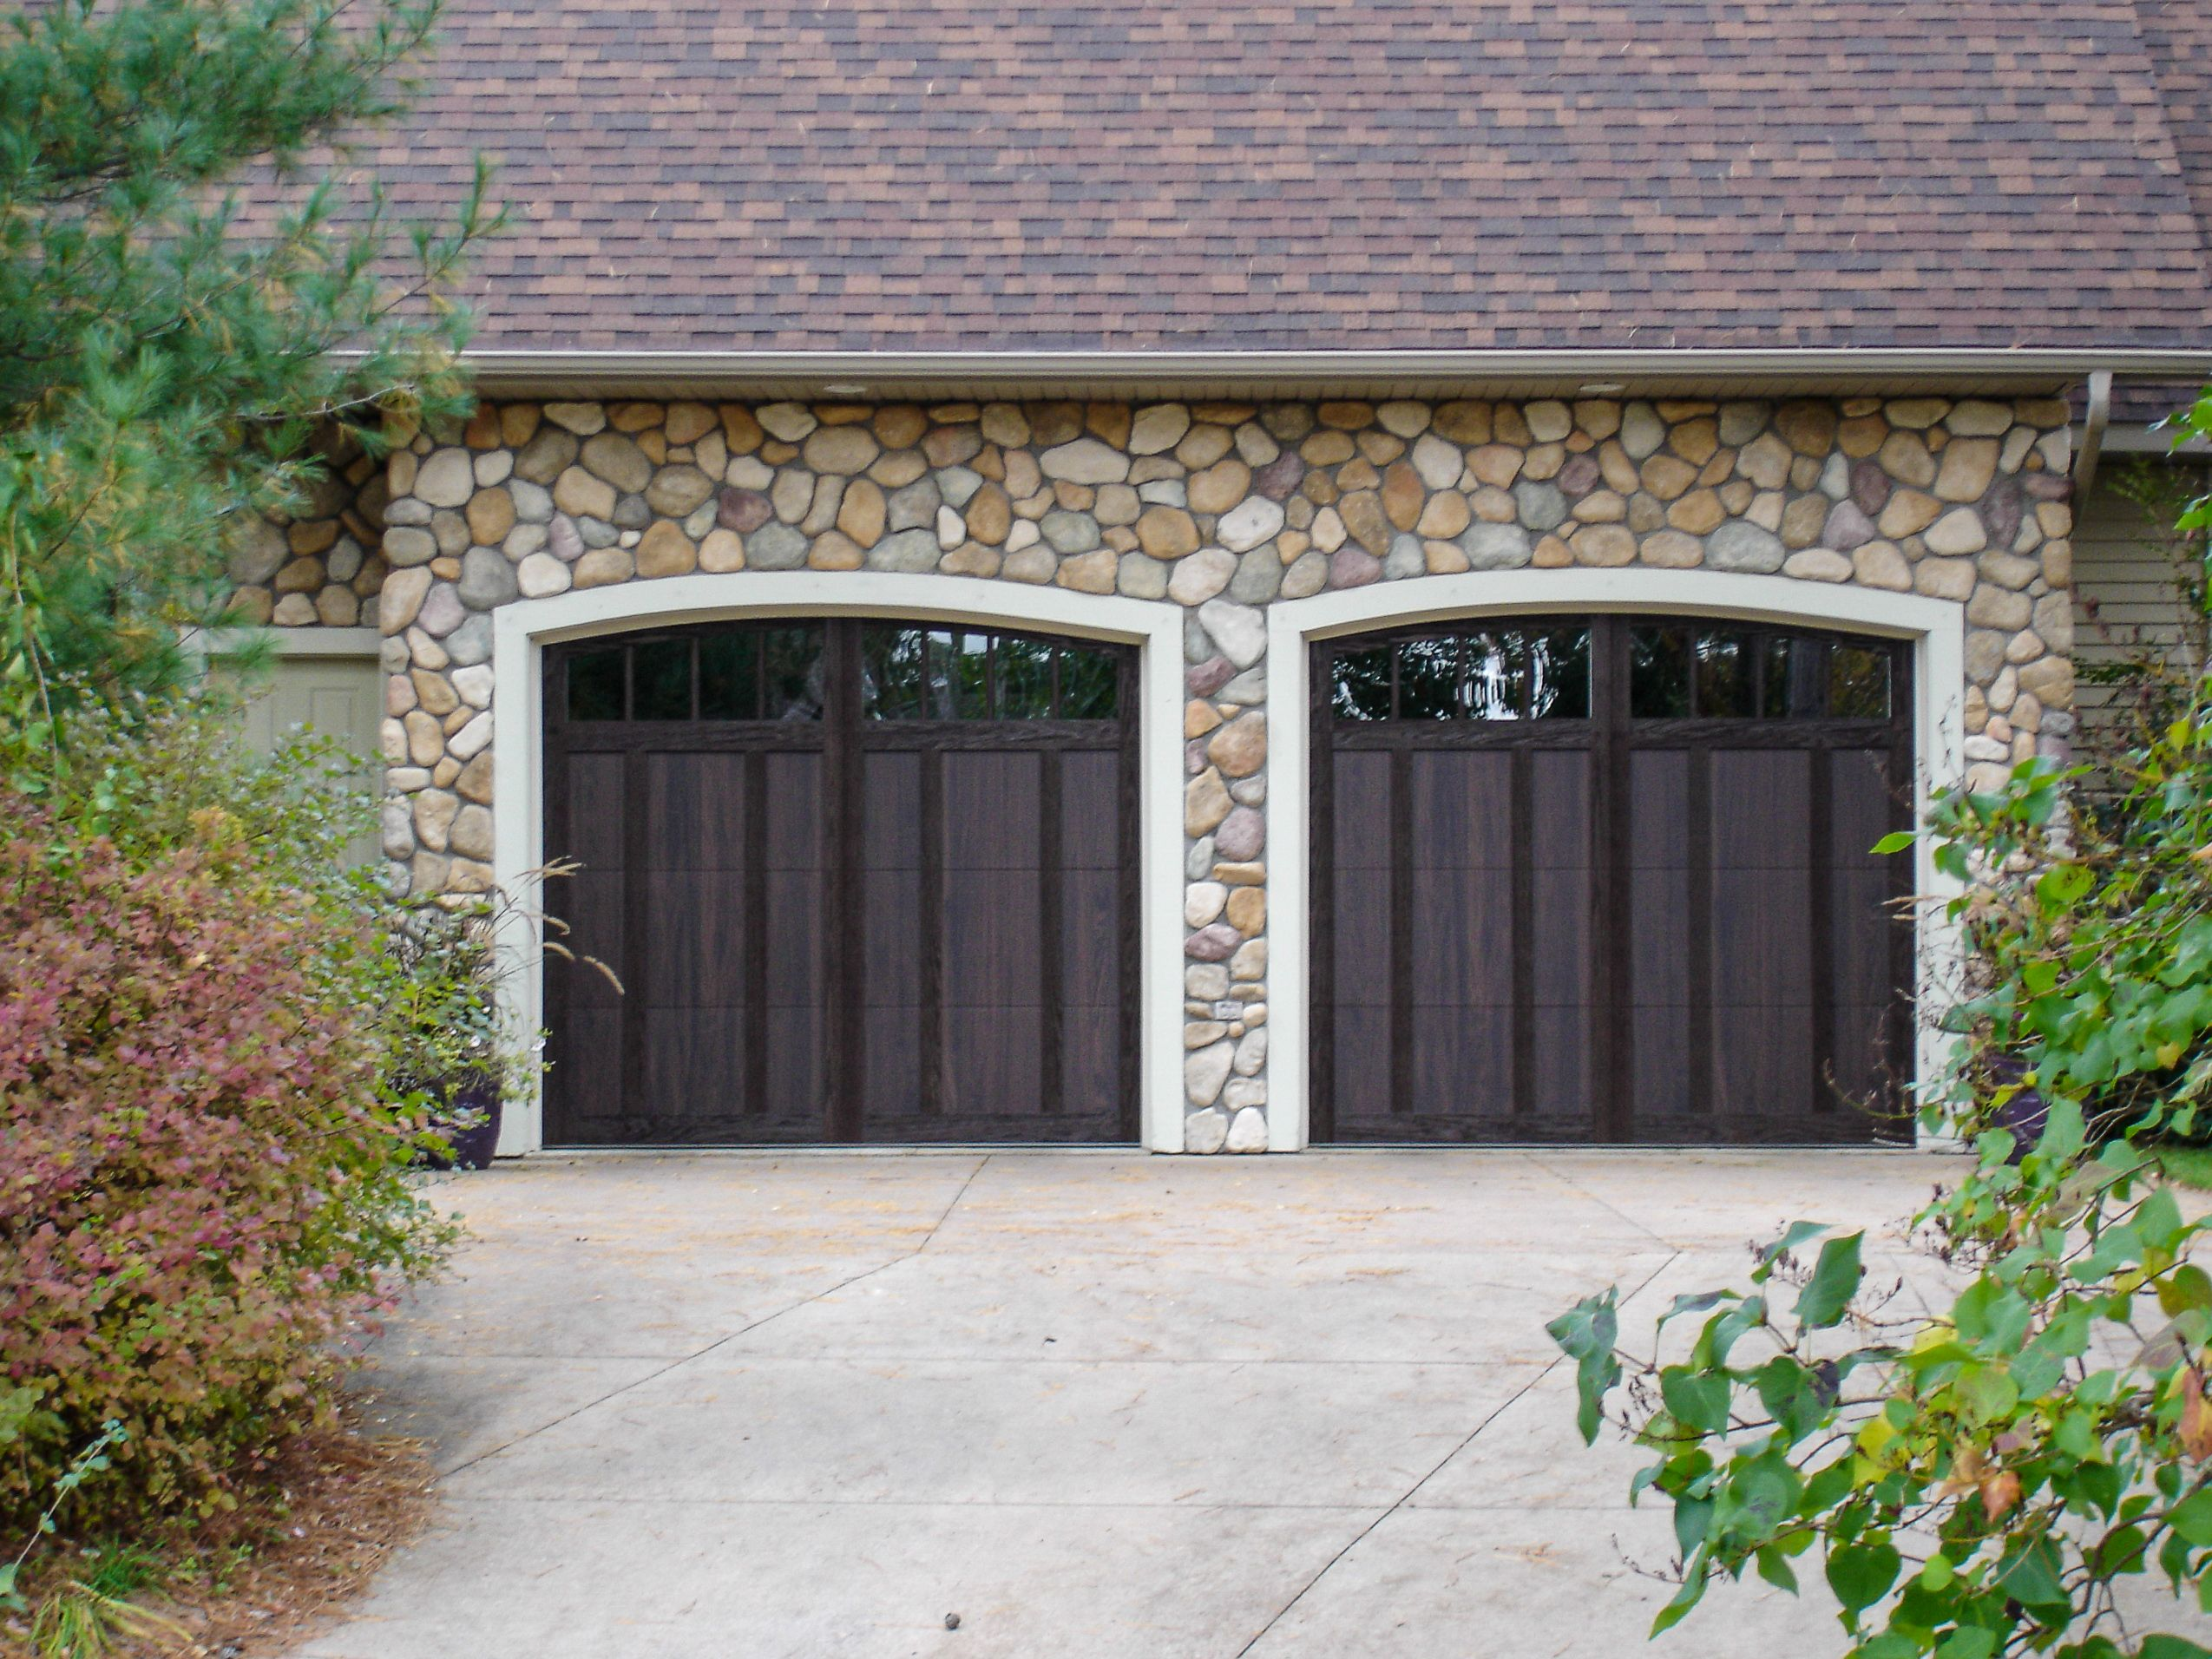 Shoreline Overlay Garage Doors In Walnut Accents Woodtones By C H I Overhead Doors Garage Door Styles Garage Doors Garage Door Design